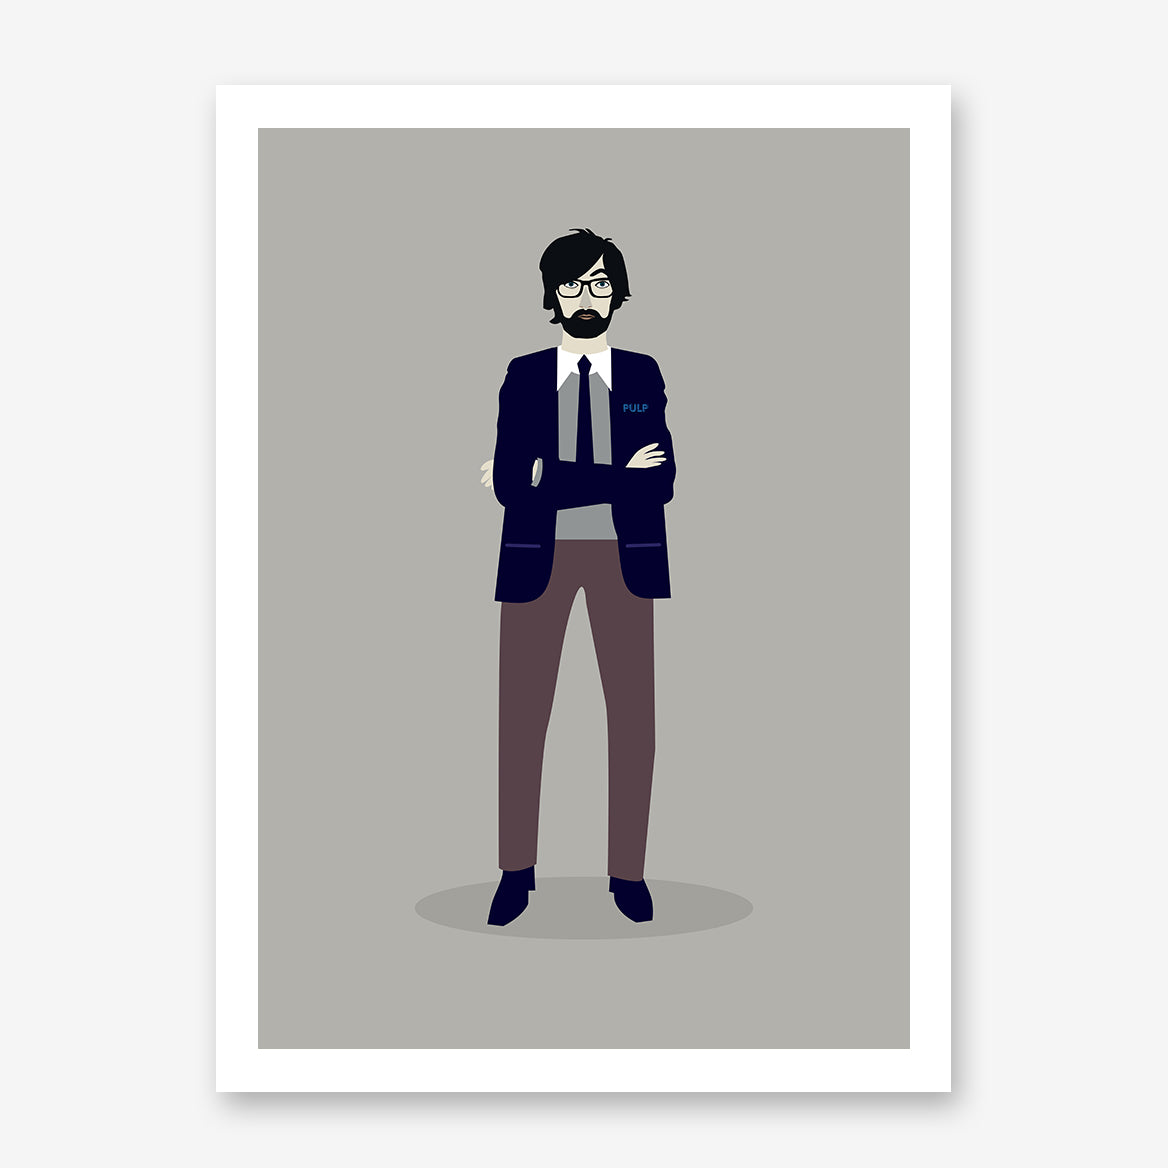 Celebrity illustration print of Jarvis Cocker stylishly drawn by Judy Kaufmann to bring out the essence of his style and character.